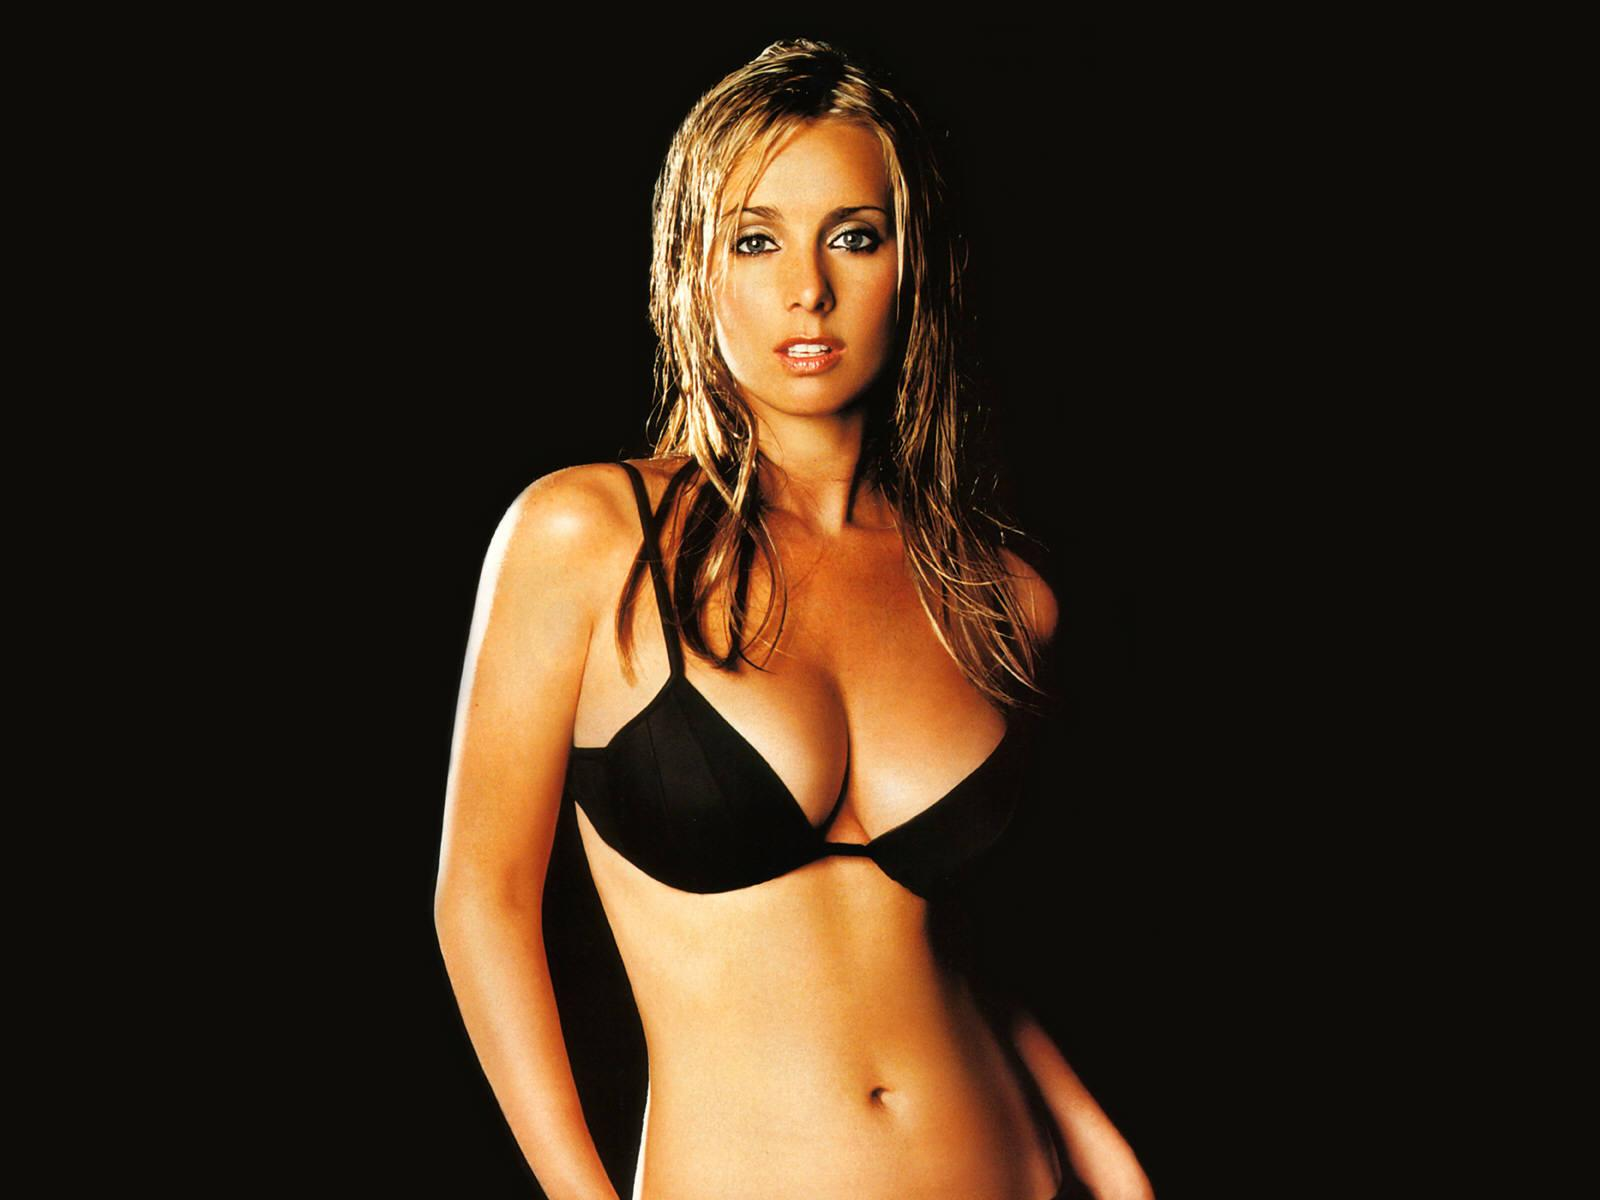 Hot Louise Redknapp nudes (17 photos), Pussy, Sideboobs, Selfie, butt 2006